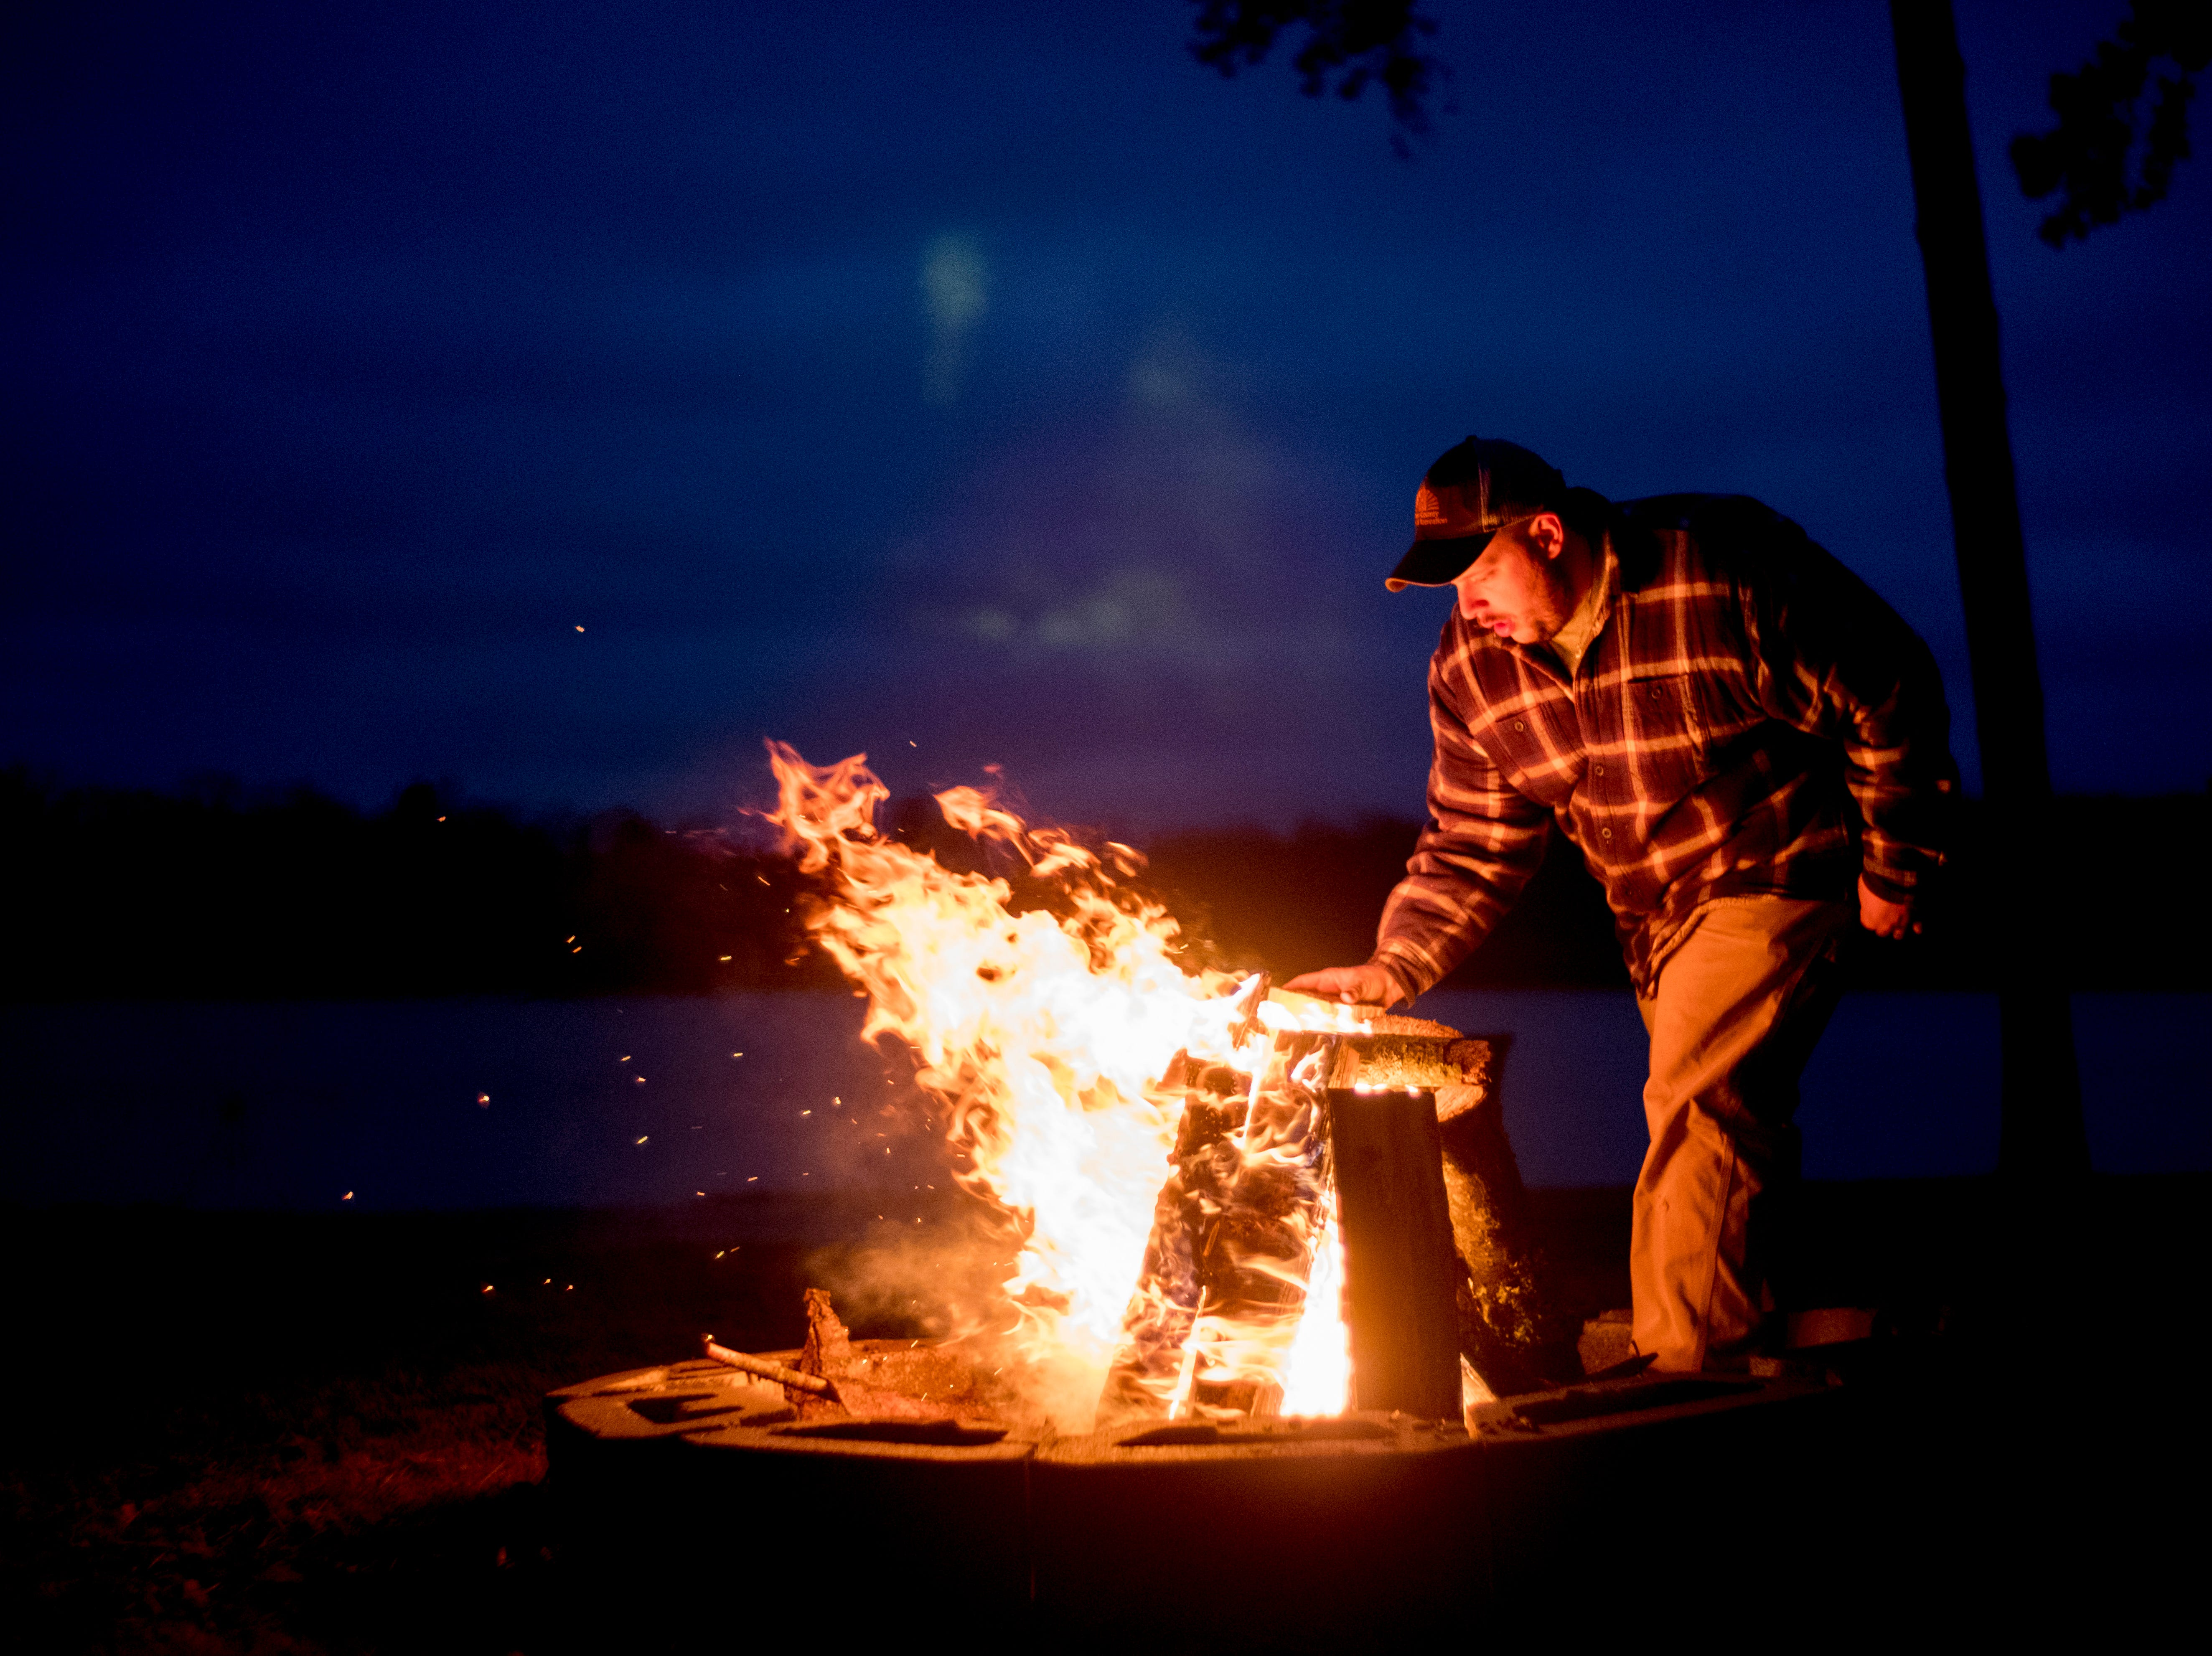 Josh Conaway, with Knox County Parks and Recreation, builds a bonfire at Knox CountyÕs 20th annual Holiday Festival of Lights kick off at The Cove at Concord Park in Farragut, Tennessee on Friday, December 21, 2018. The family-friendly event is free and will run through Dec. 29 from 6 to 9 p.m., excluding Christmas Eve and Christmas Day.